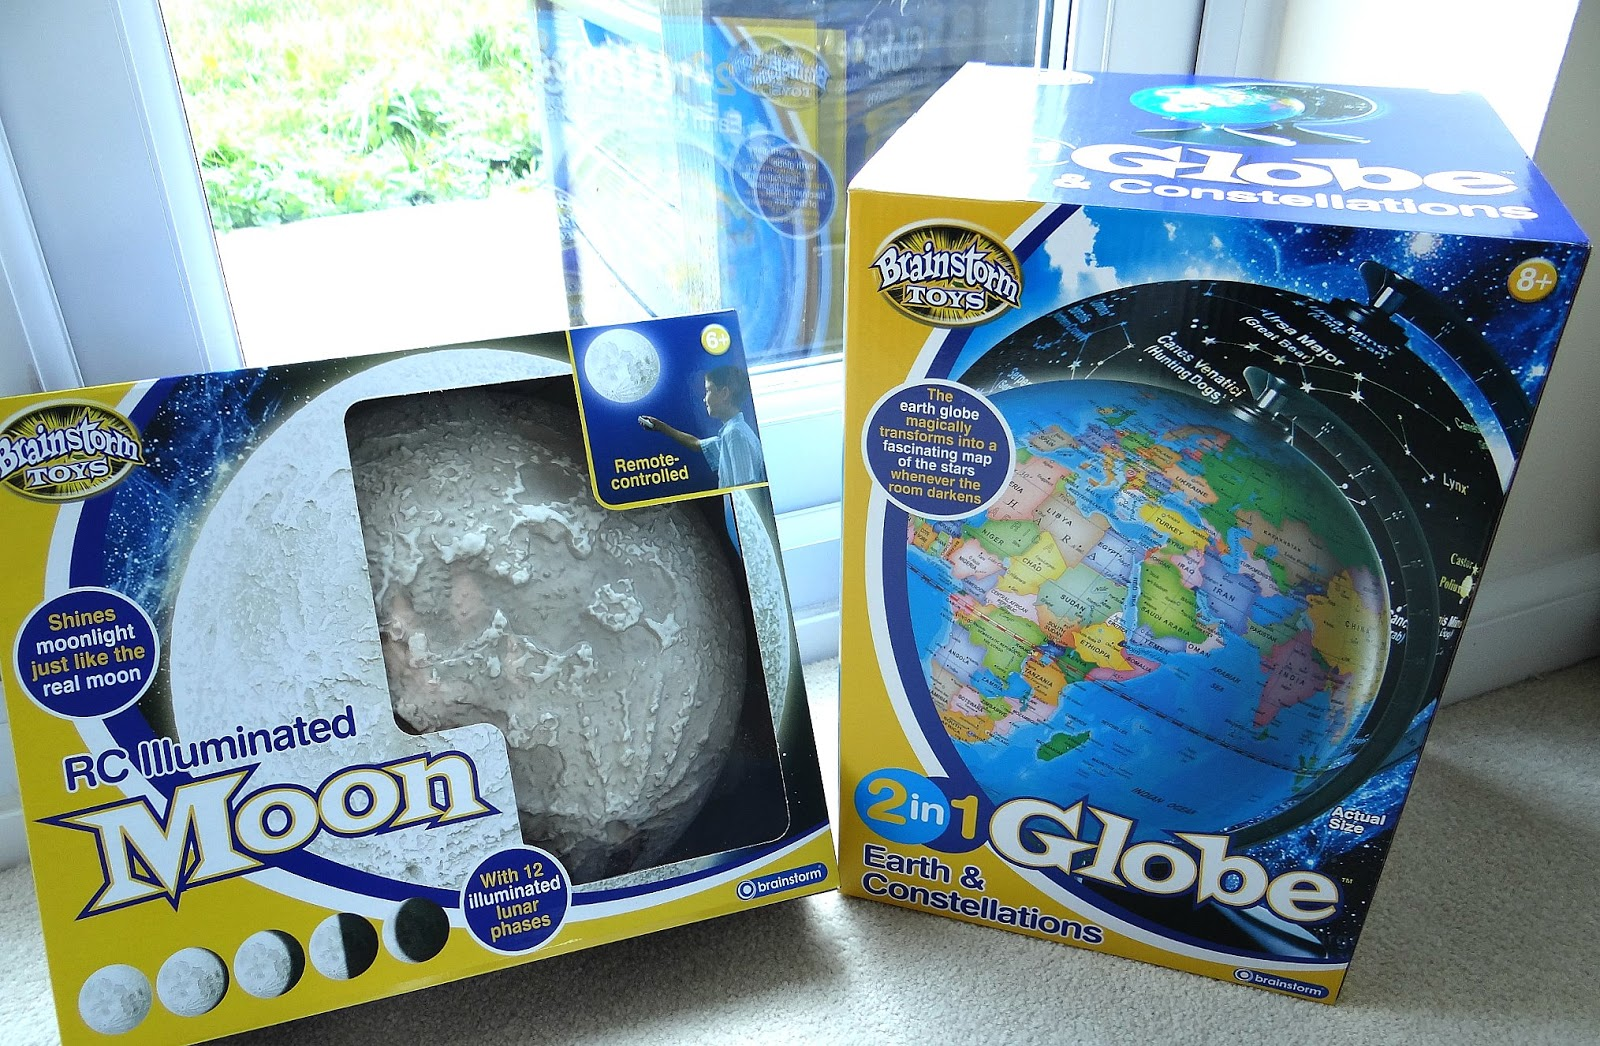 Brainstorm Toys, educational toy, 2 in 1 Globe Earth and Constellations